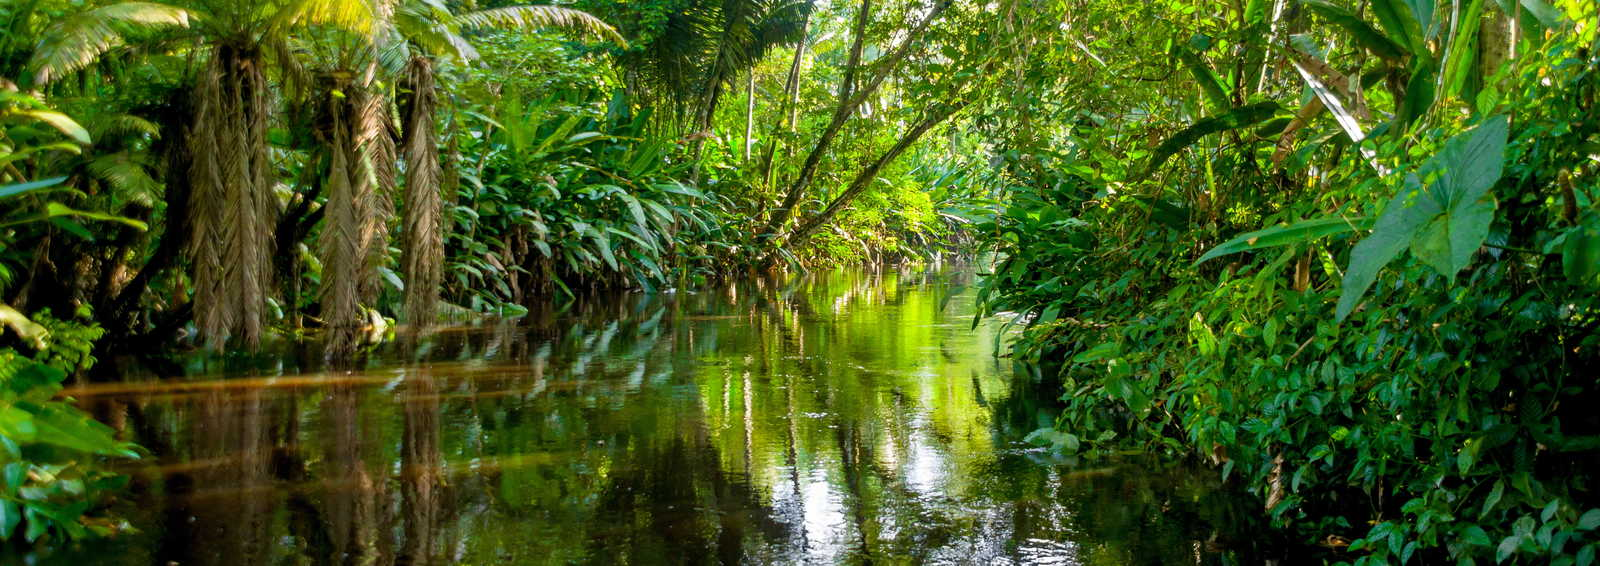 Amazon Jungle, Peru